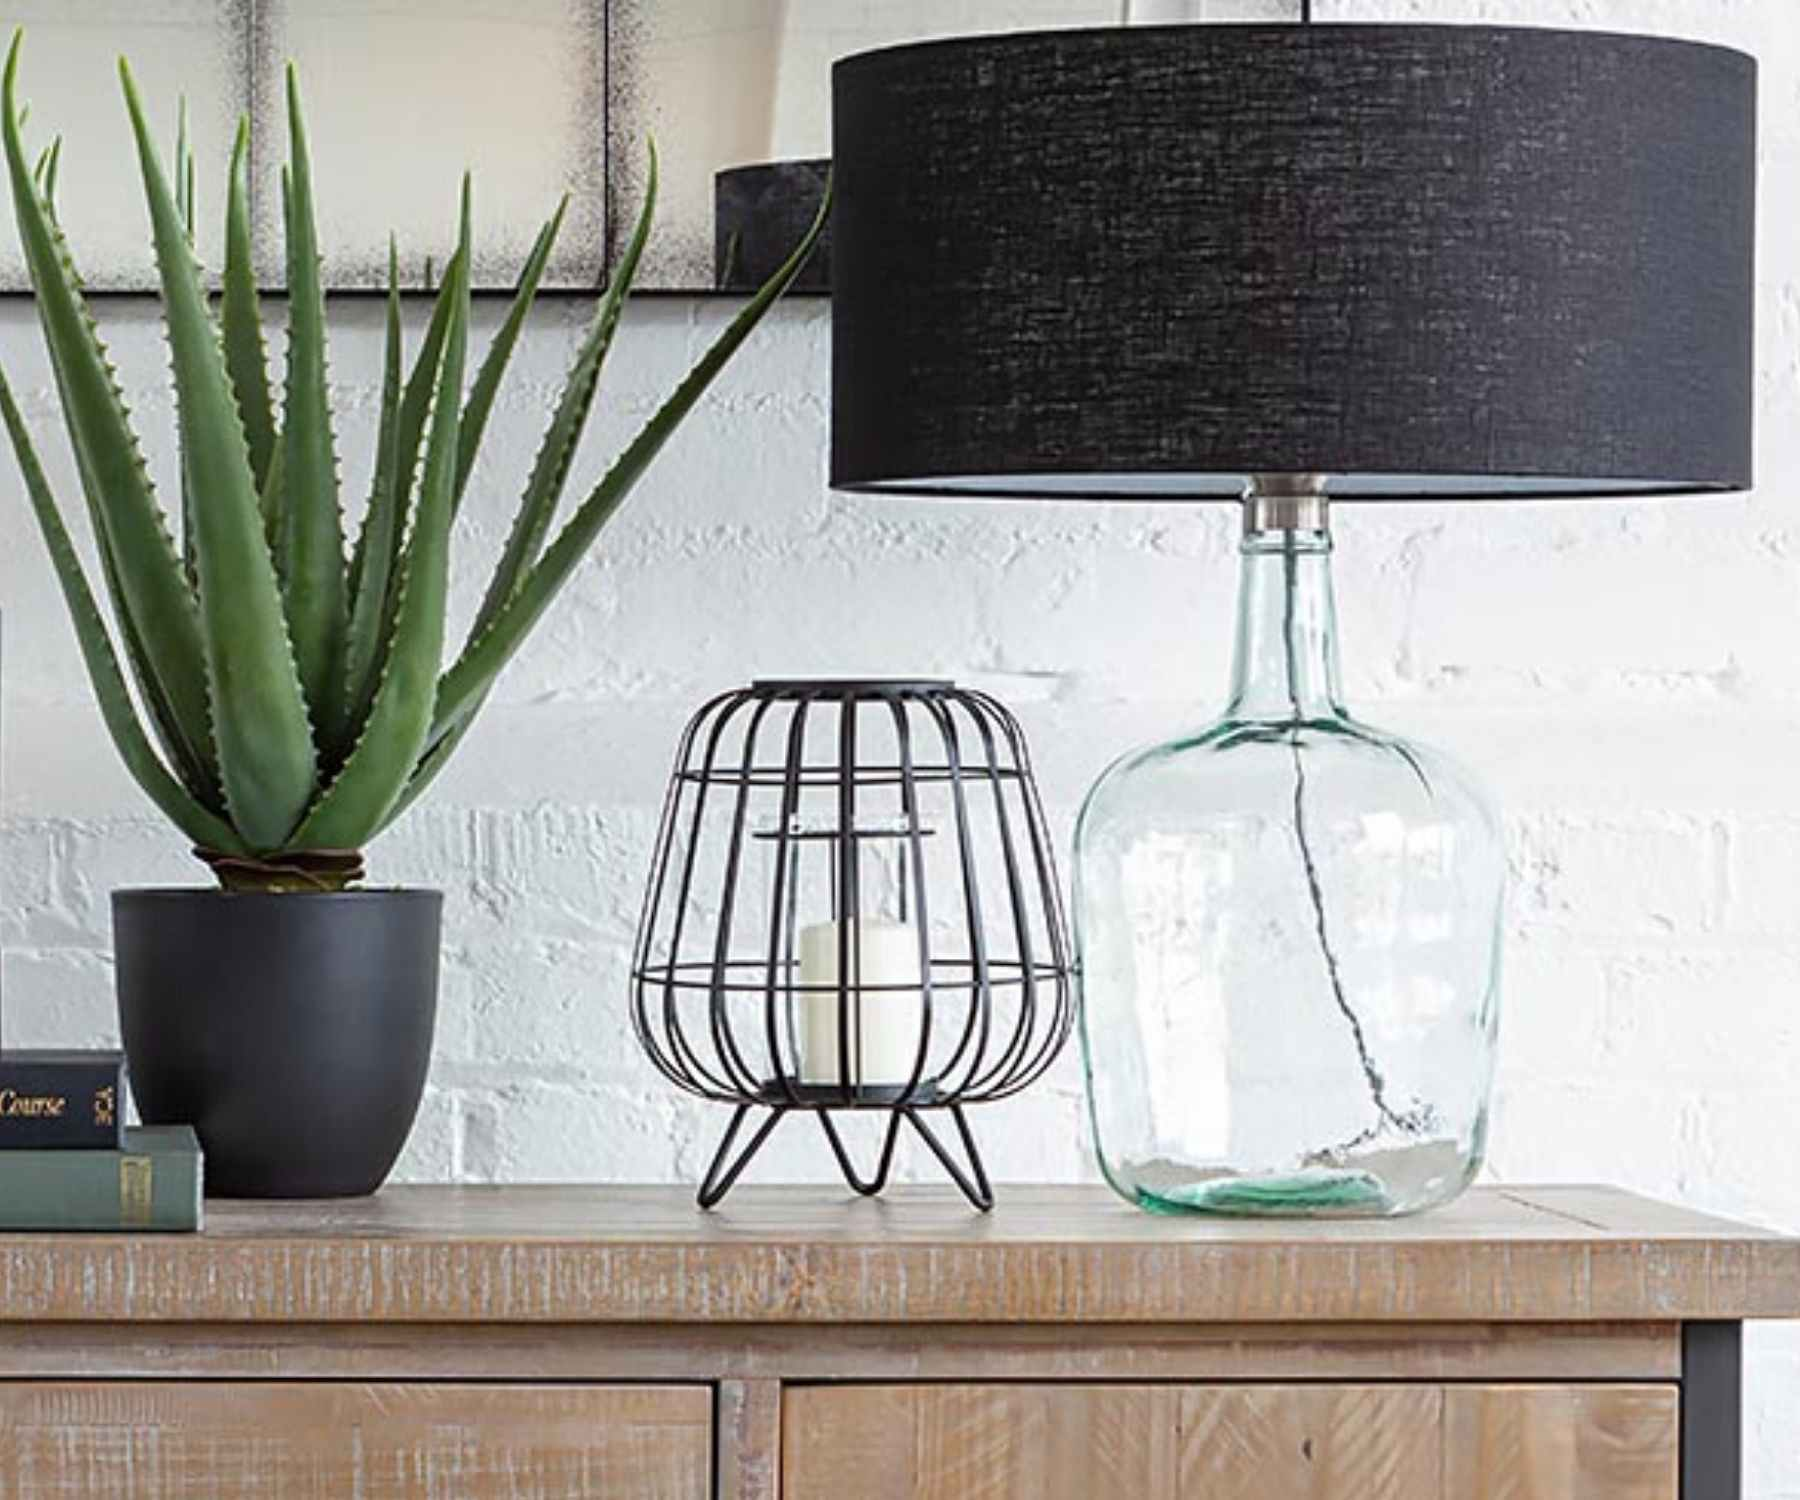 Glass table lamp on wooden sideboard with aloe vera plant